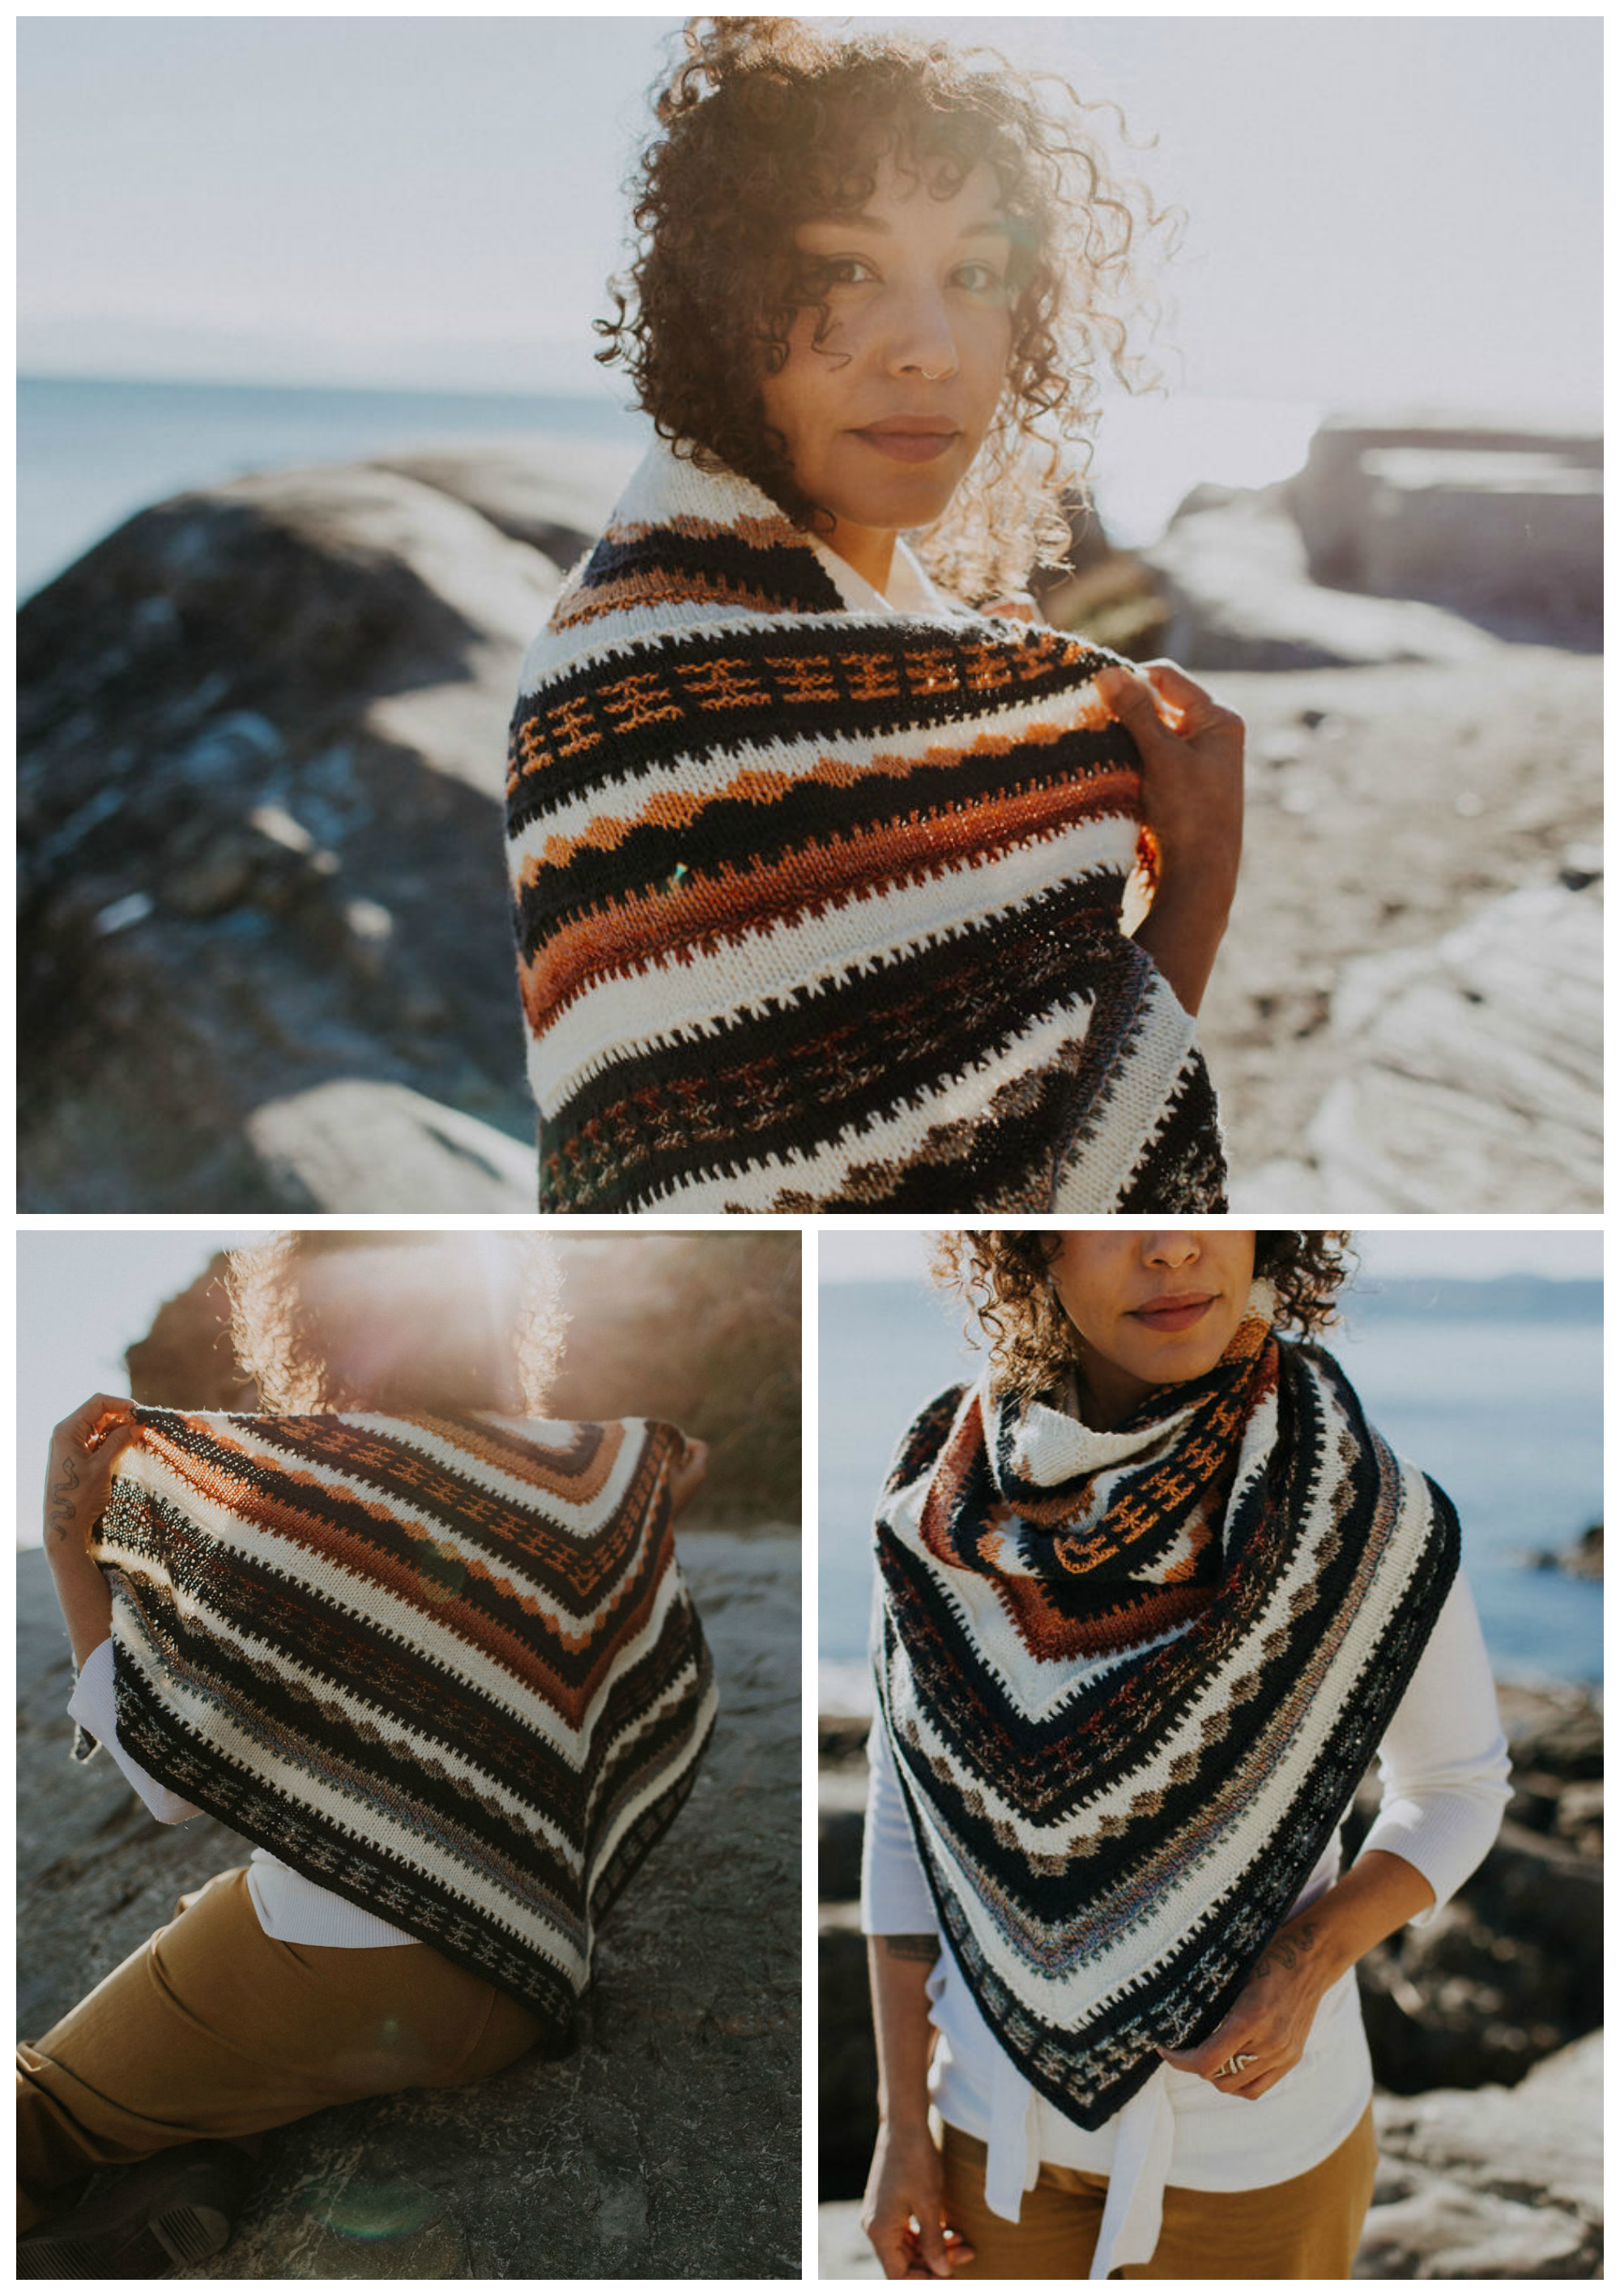 Curly haired woman wearing multi coloured mosaic knit triangular shawl on boulder in front of ocean in various poses.